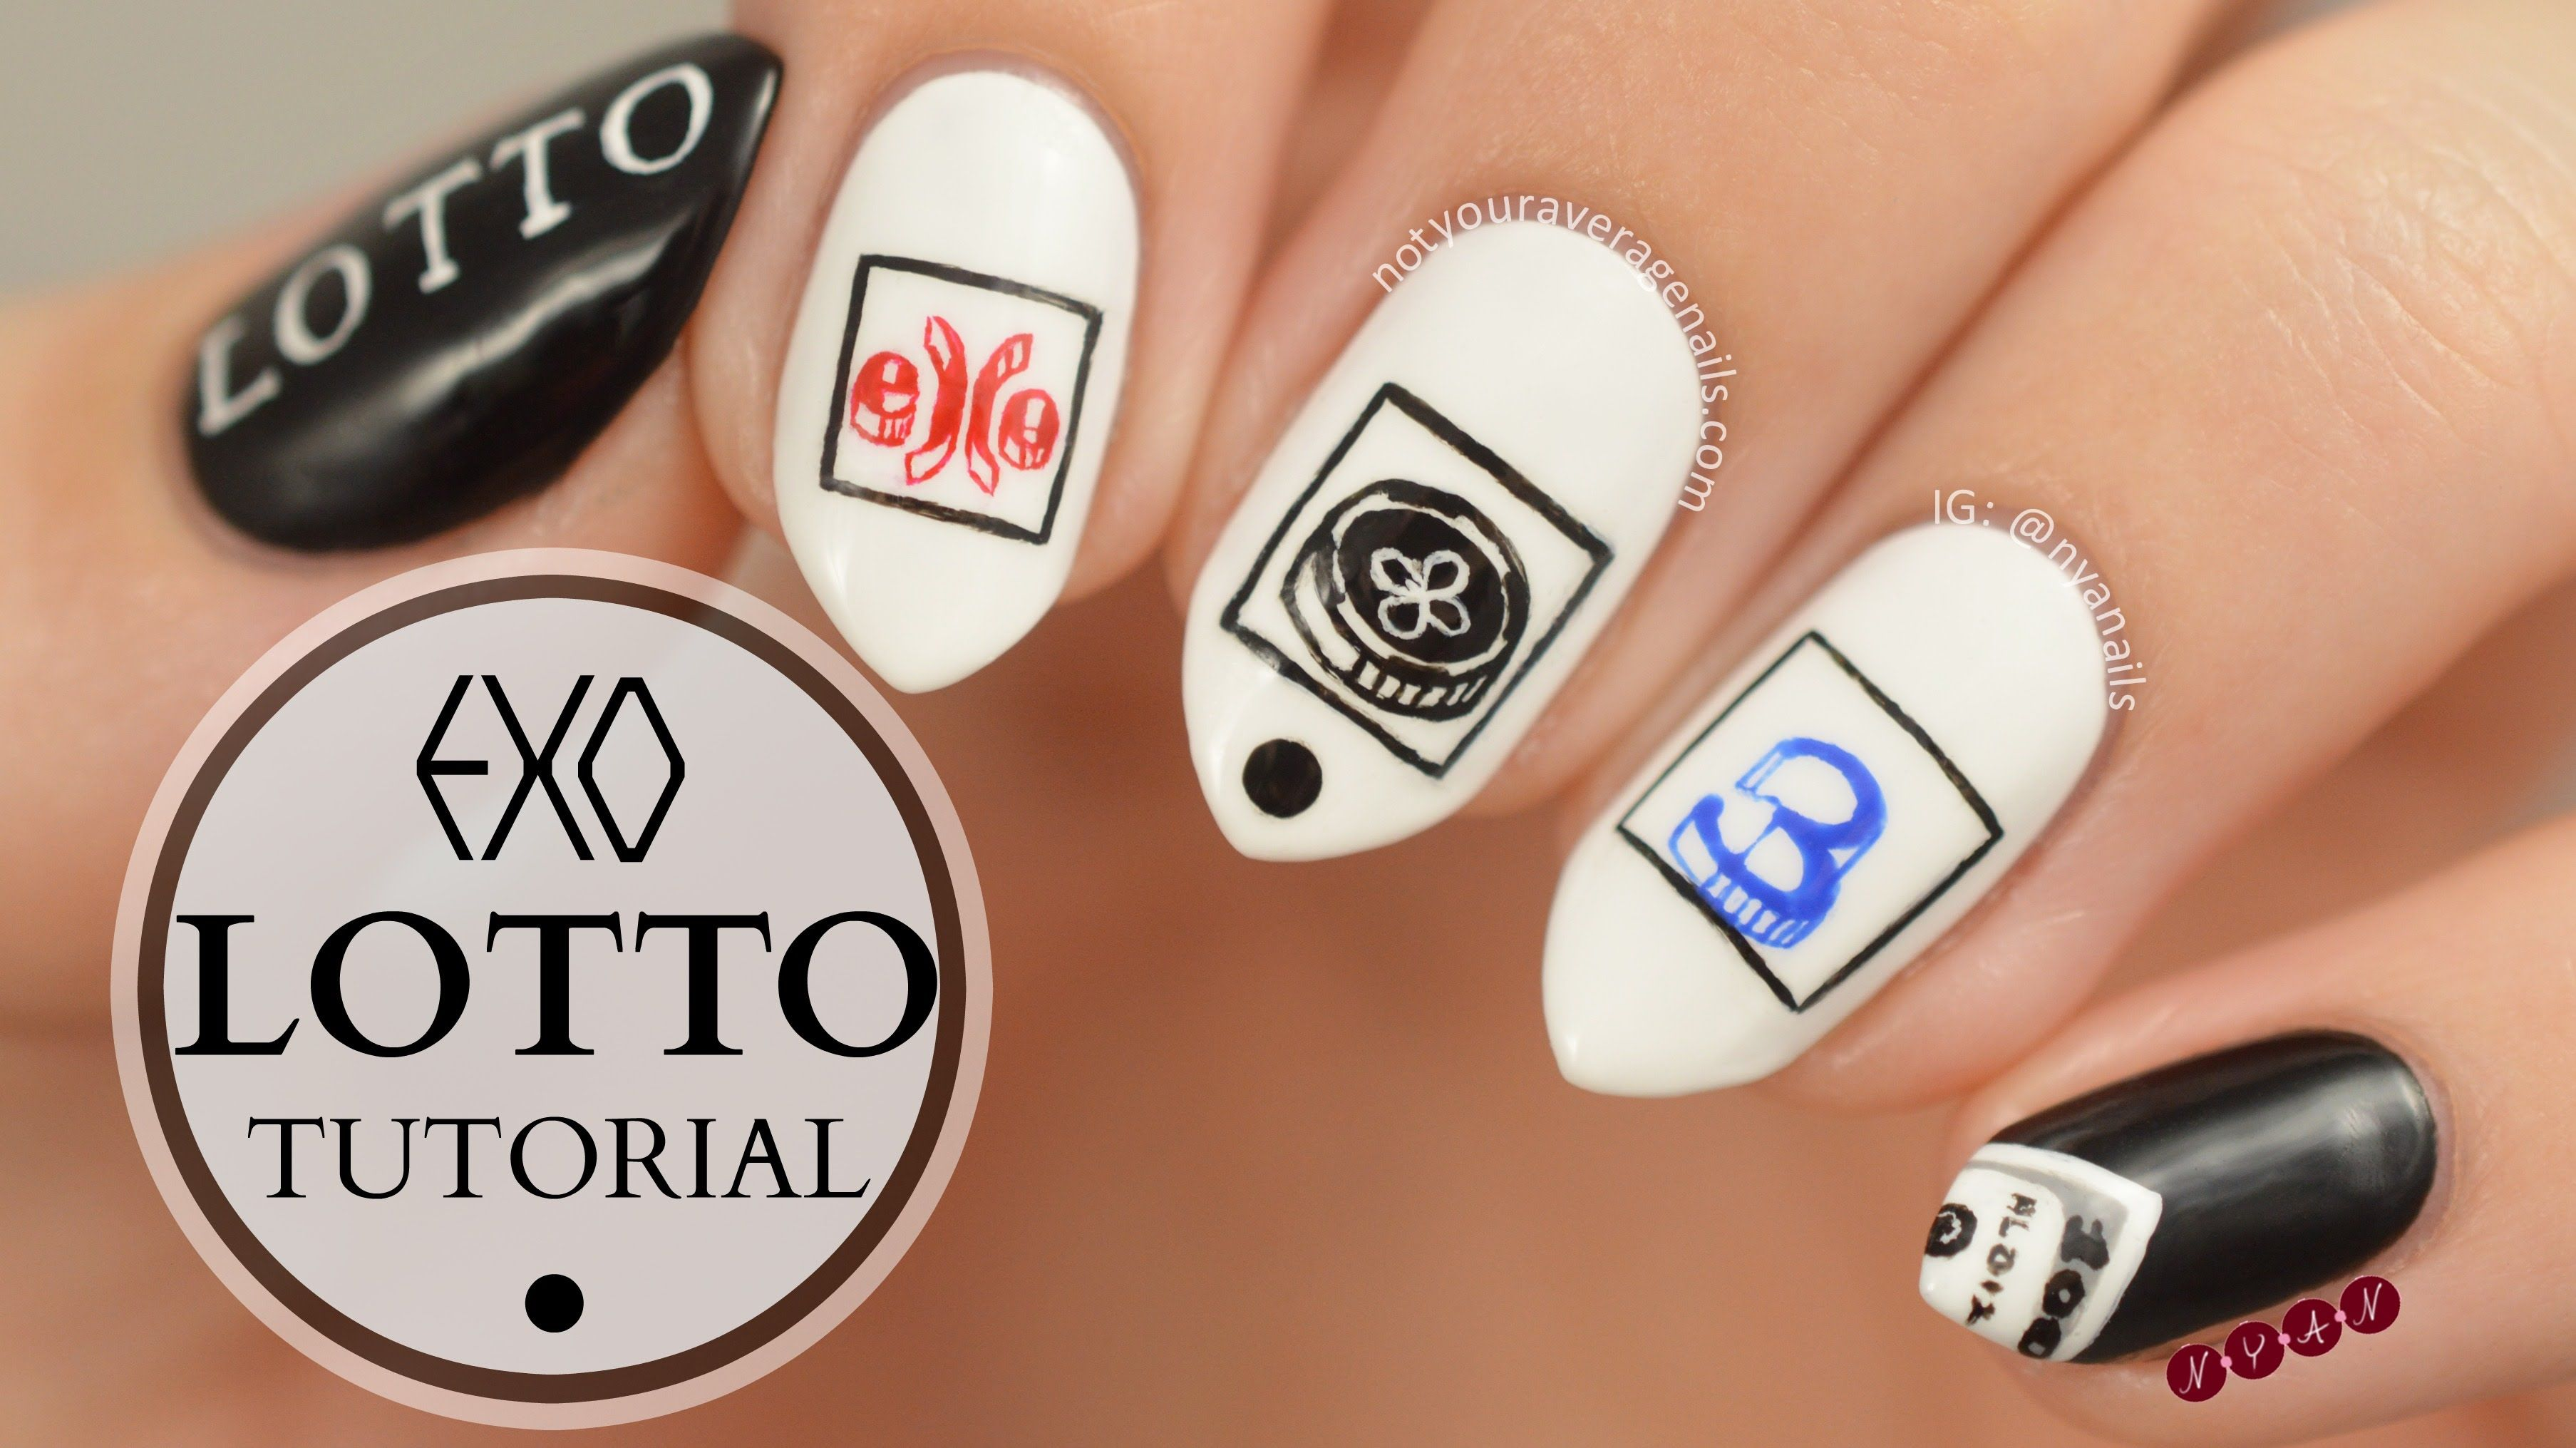 EXO #Lotto Inspired Nail Art Tutorial | Nails | Pinterest | Art ...